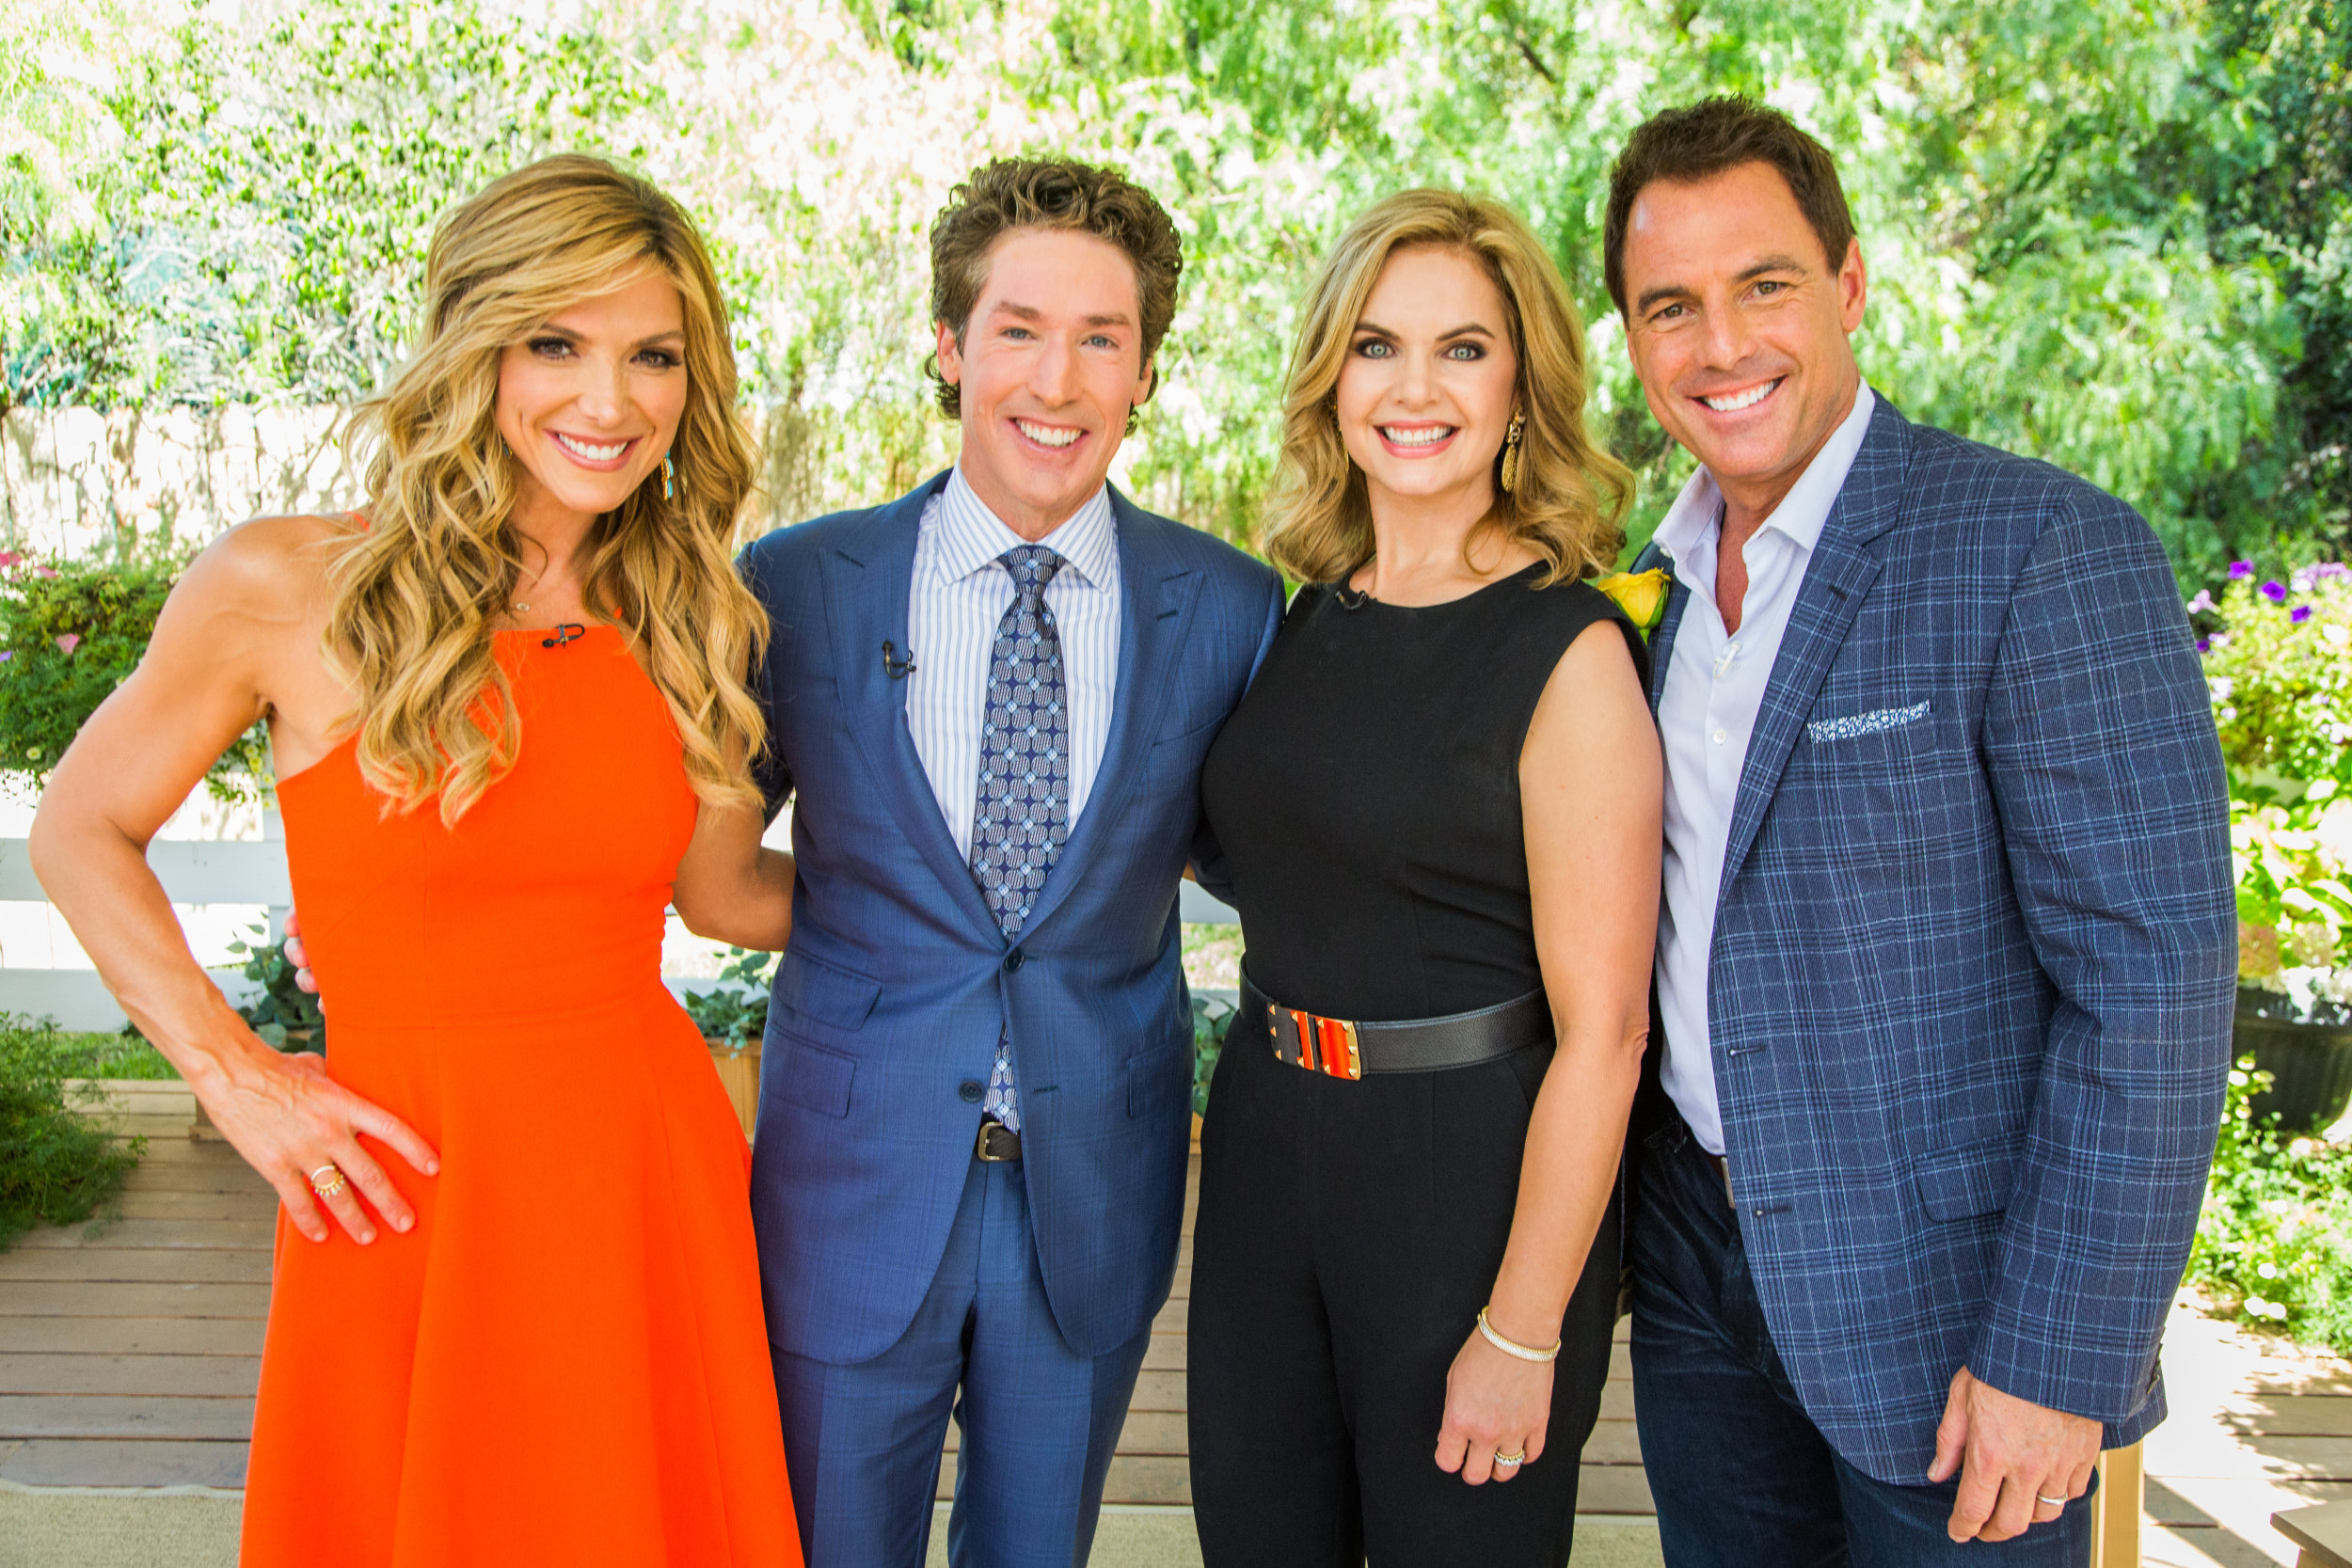 Hollywood steals home and family - Home Family Season 4